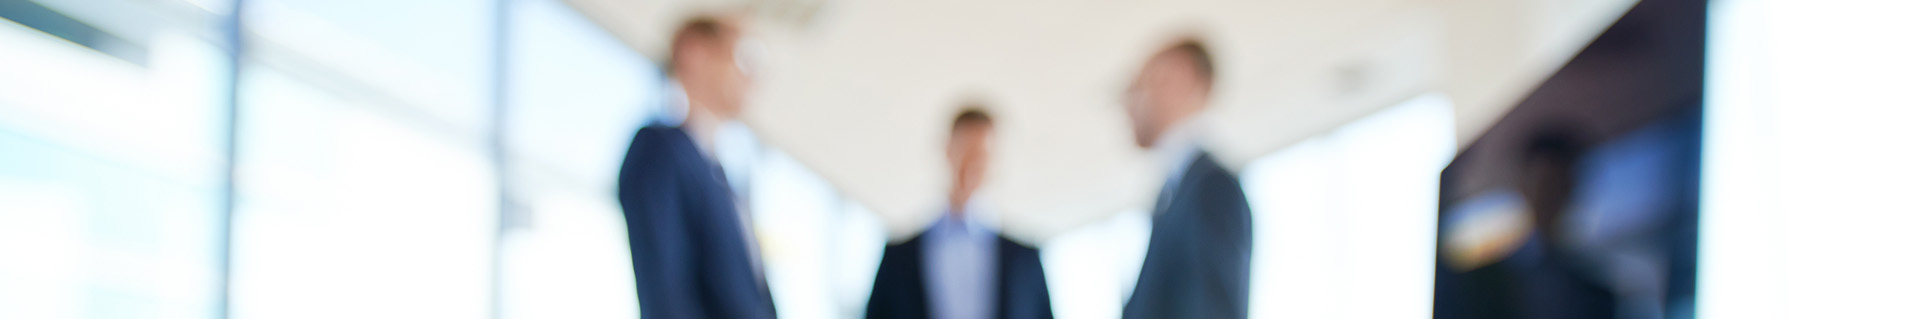 Blurred image of 3 businessmen discussing orders